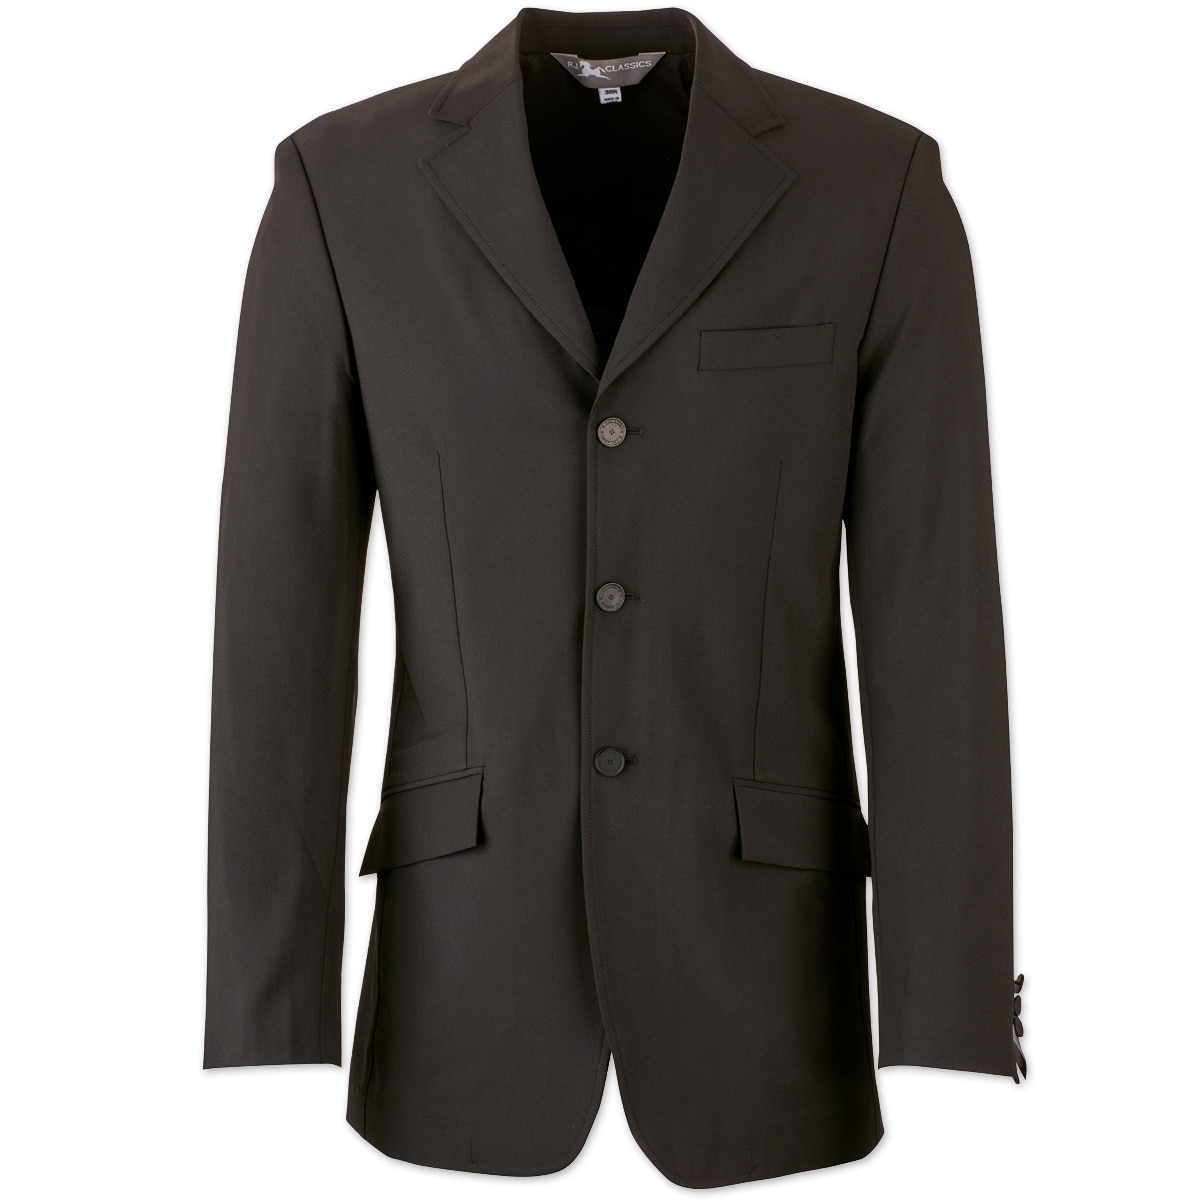 RJ Classics Men's Liam Grey Label Show Coat